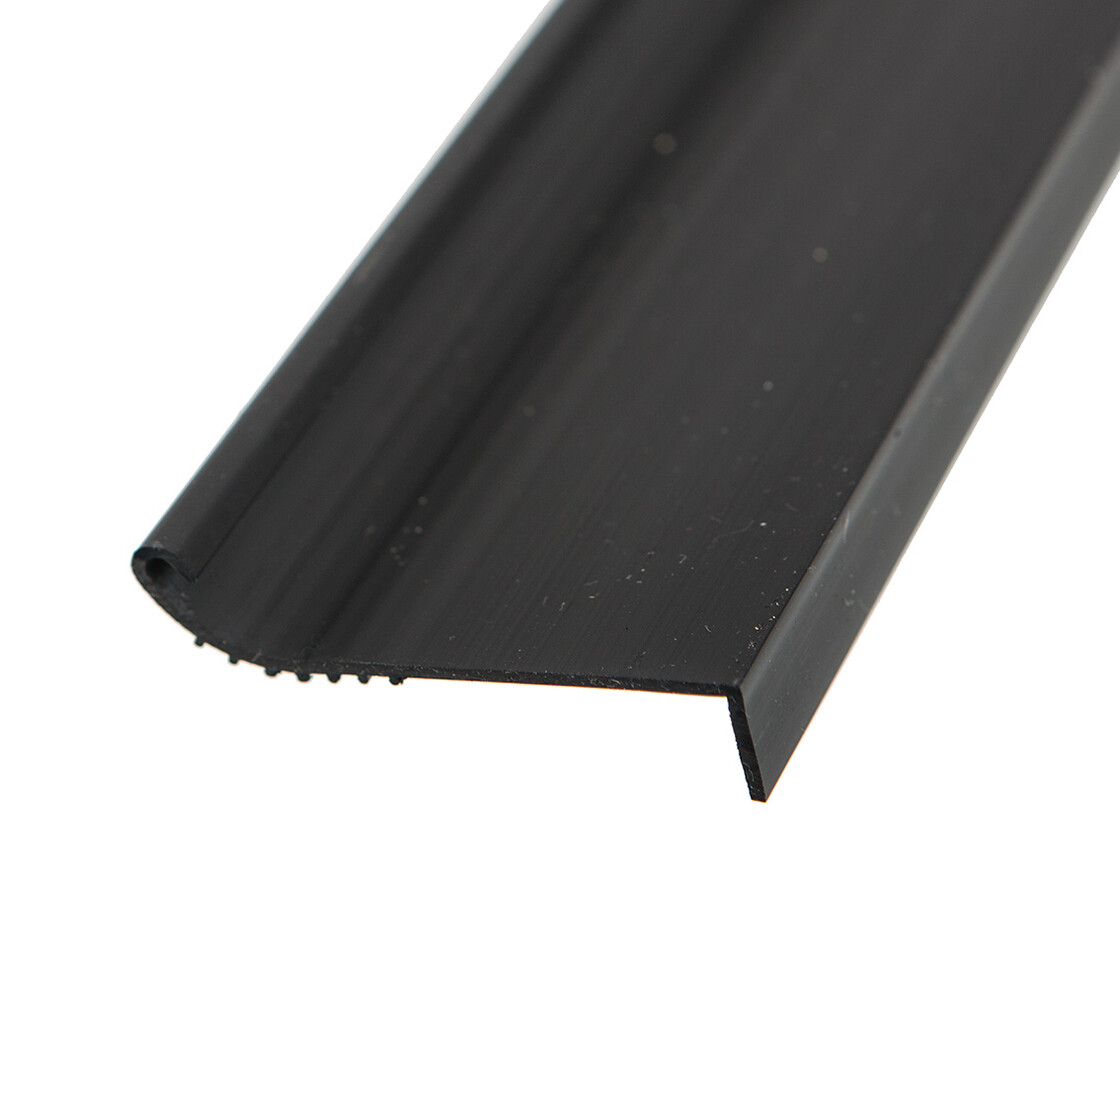 t25 sliding door sill cover pvc black exclusive made in germany 255 070 050d 01c